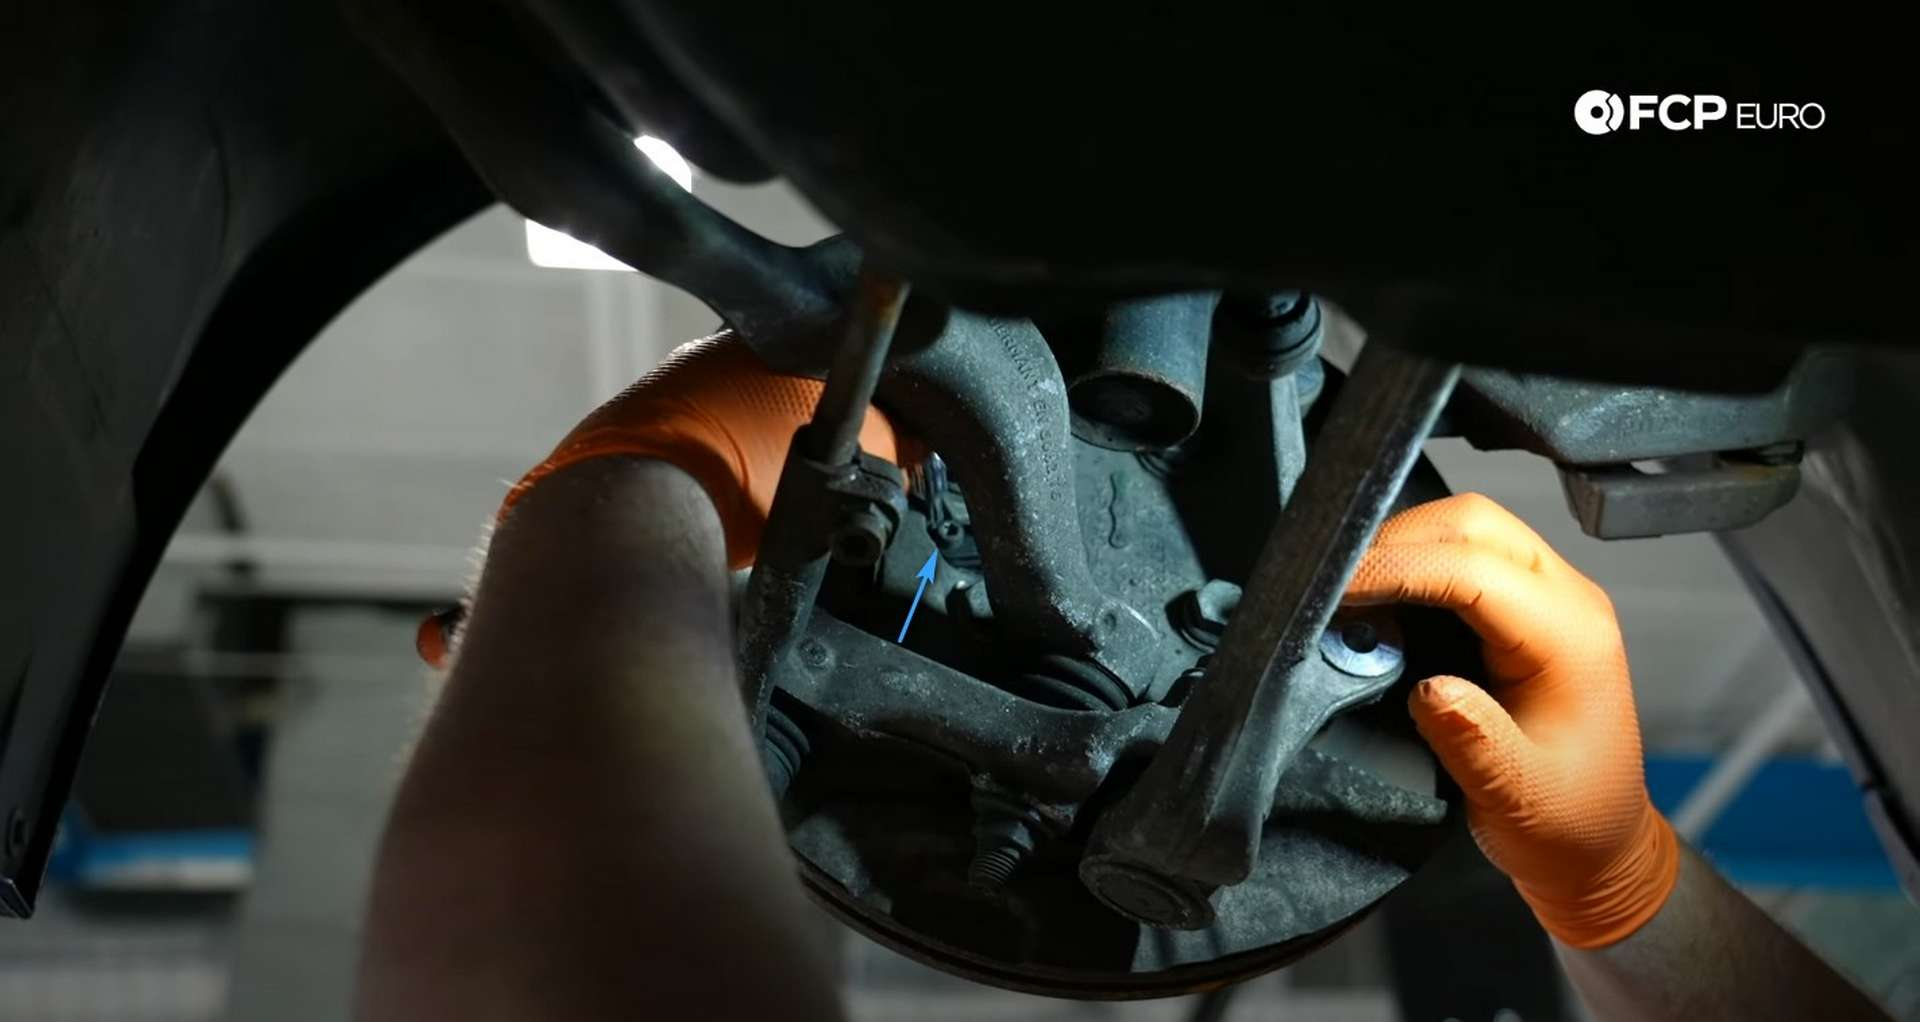 DIY BMW E90 Steering Knuckle Replacement removing the wheel speed sensor